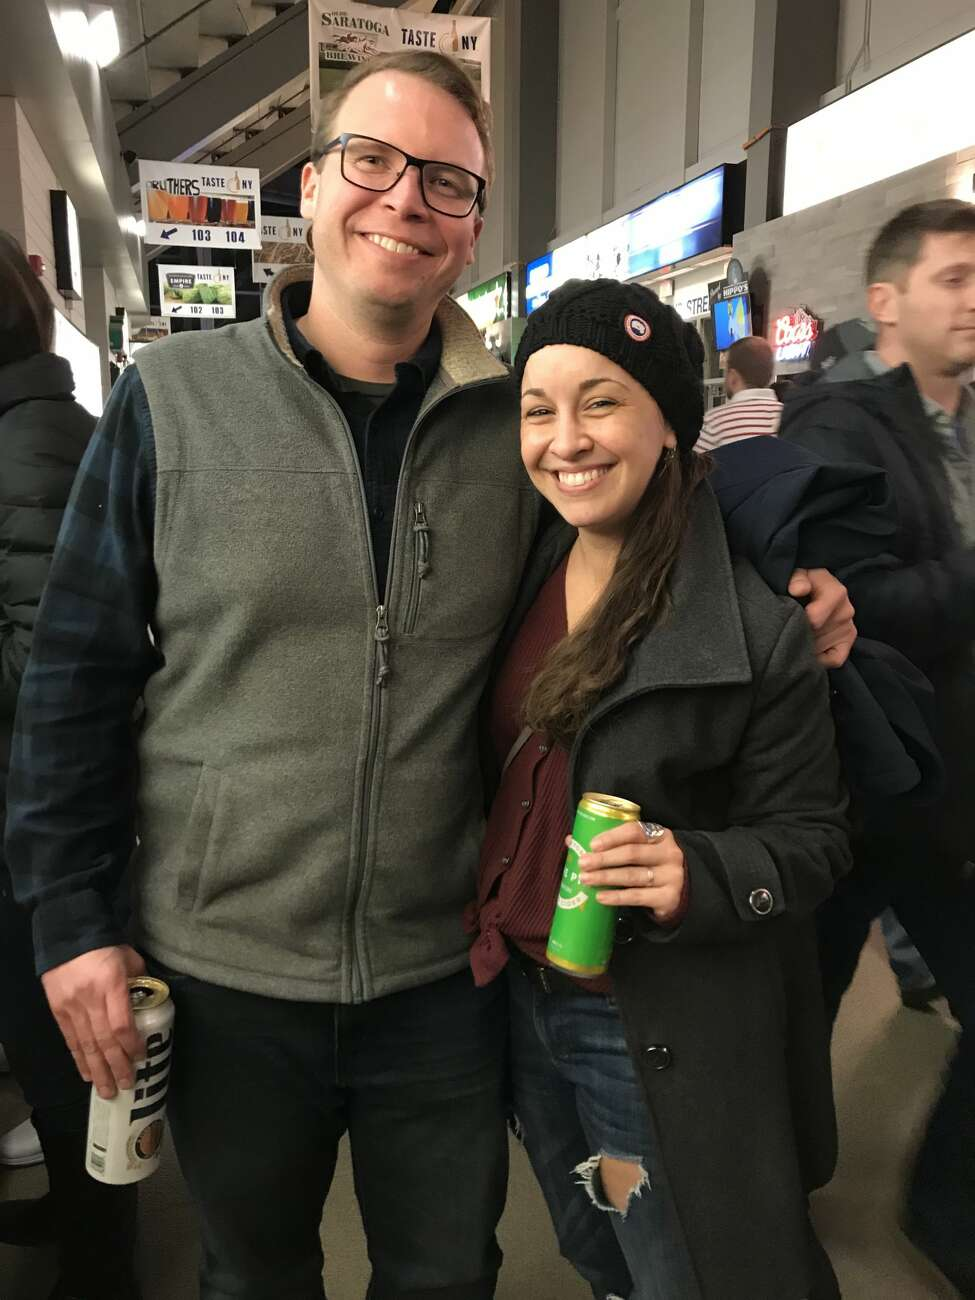 Were you Seen at the Dave Matthews Band concert at Times Union Center in Albany on Dec. 5, 2018?